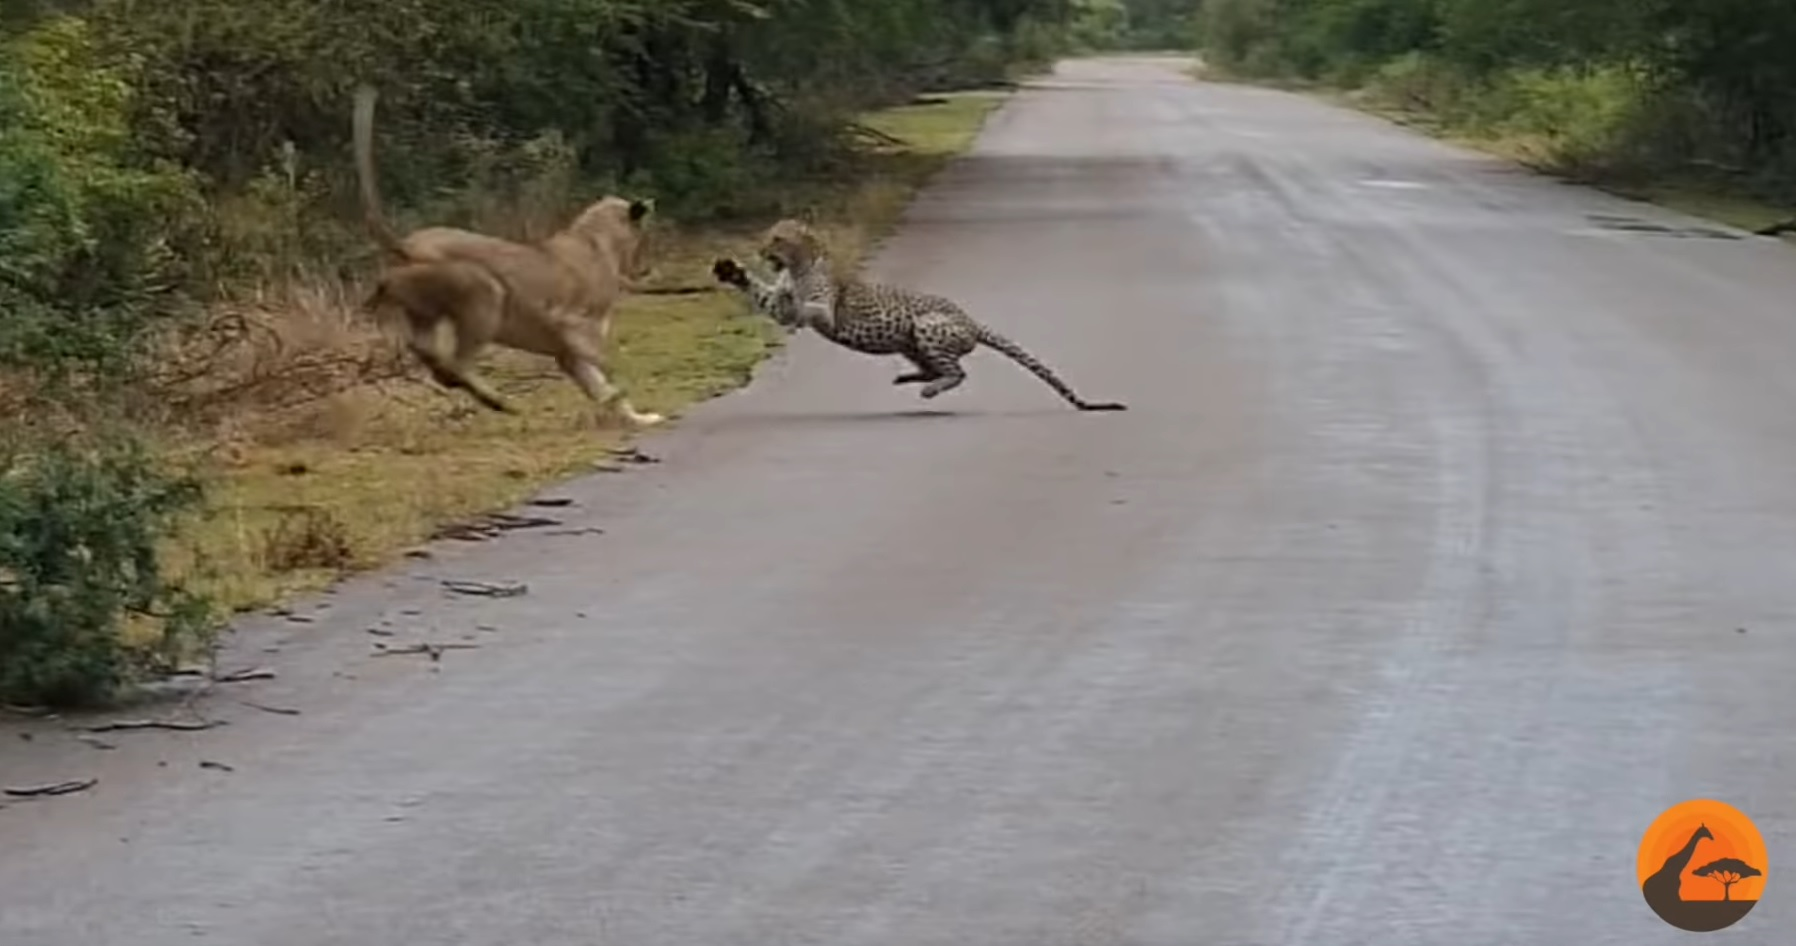 Lioness Vs Leopard On The Road